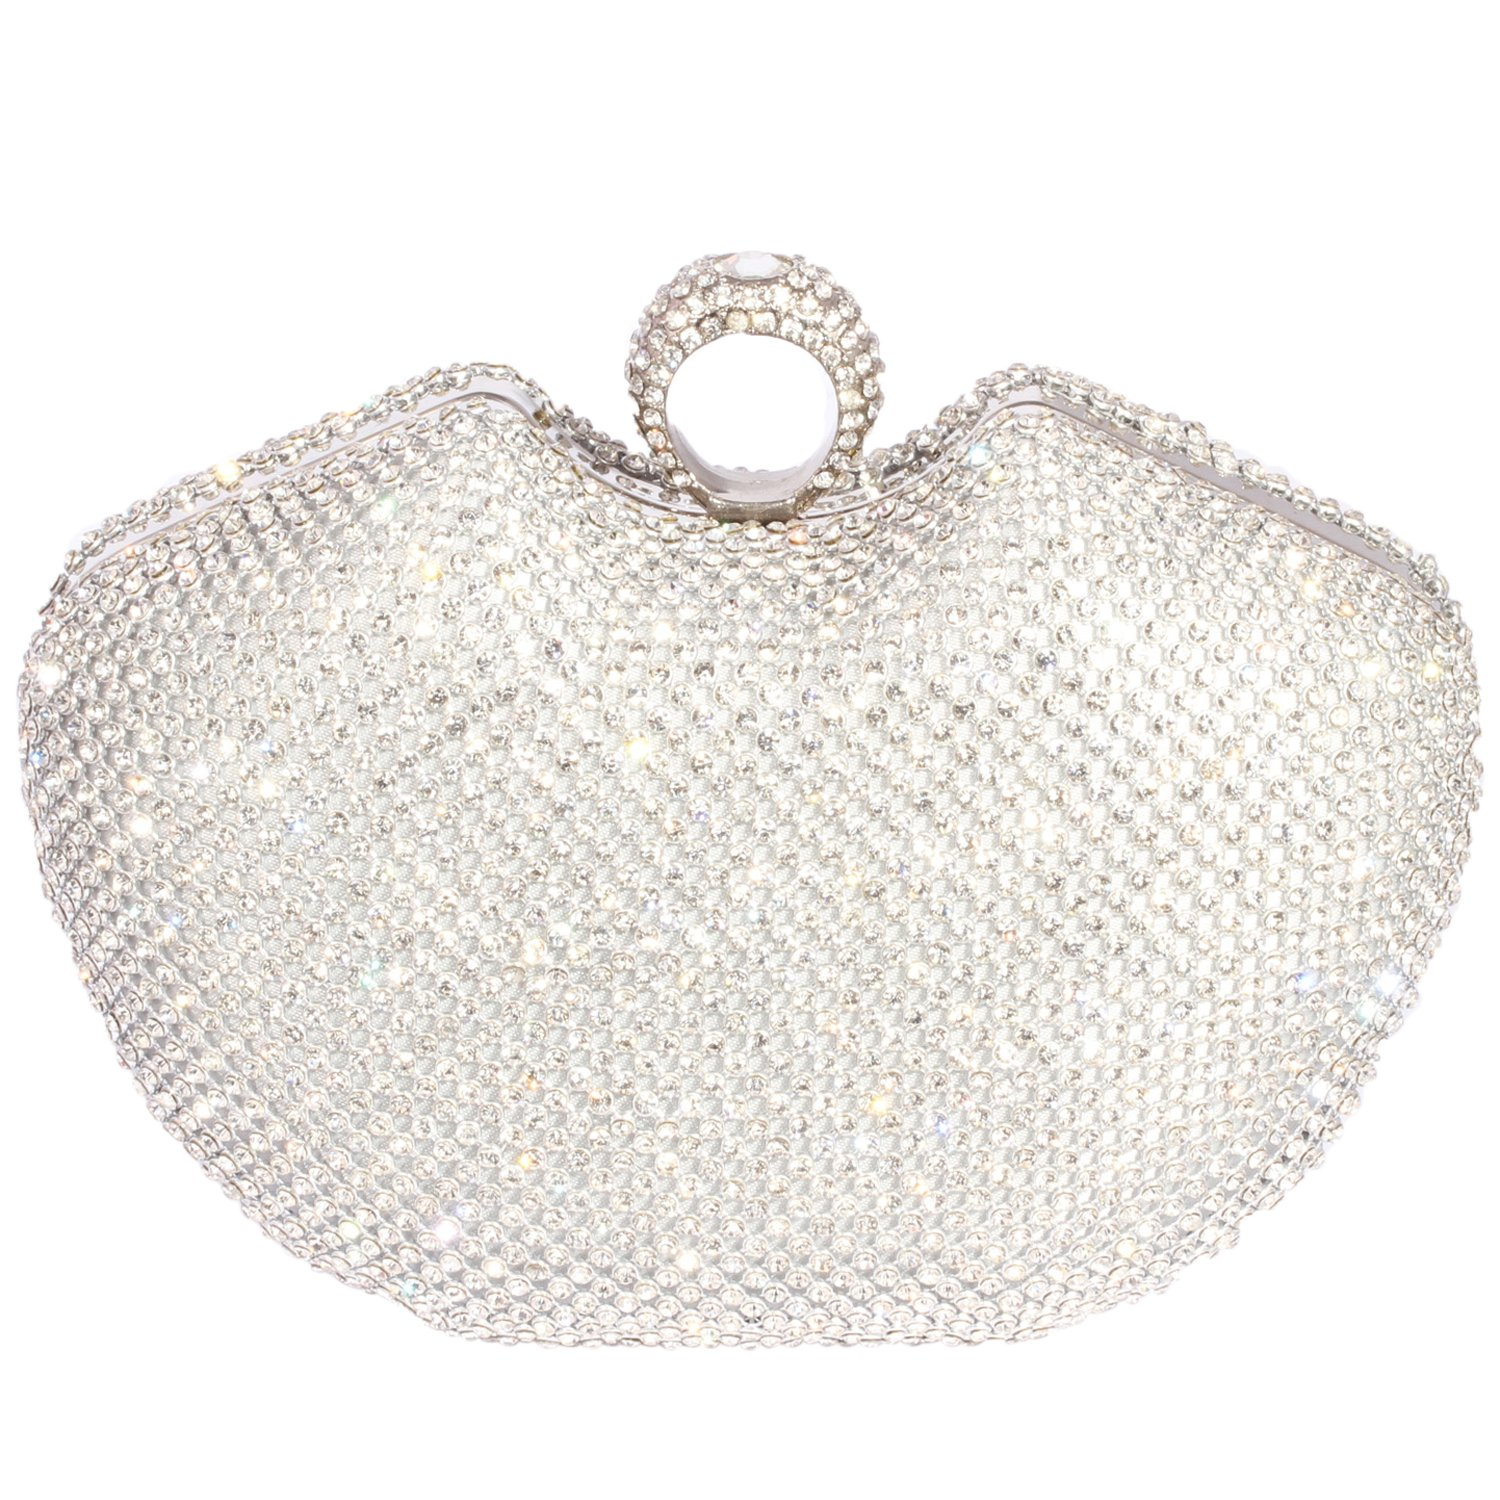 Digabi Shiny Rhinestone Wedding Clutch Purse Cherry Shape women Crystal Evening Clutch Bags (One Size: 6.3x4.8x2.6 IN, Silver)